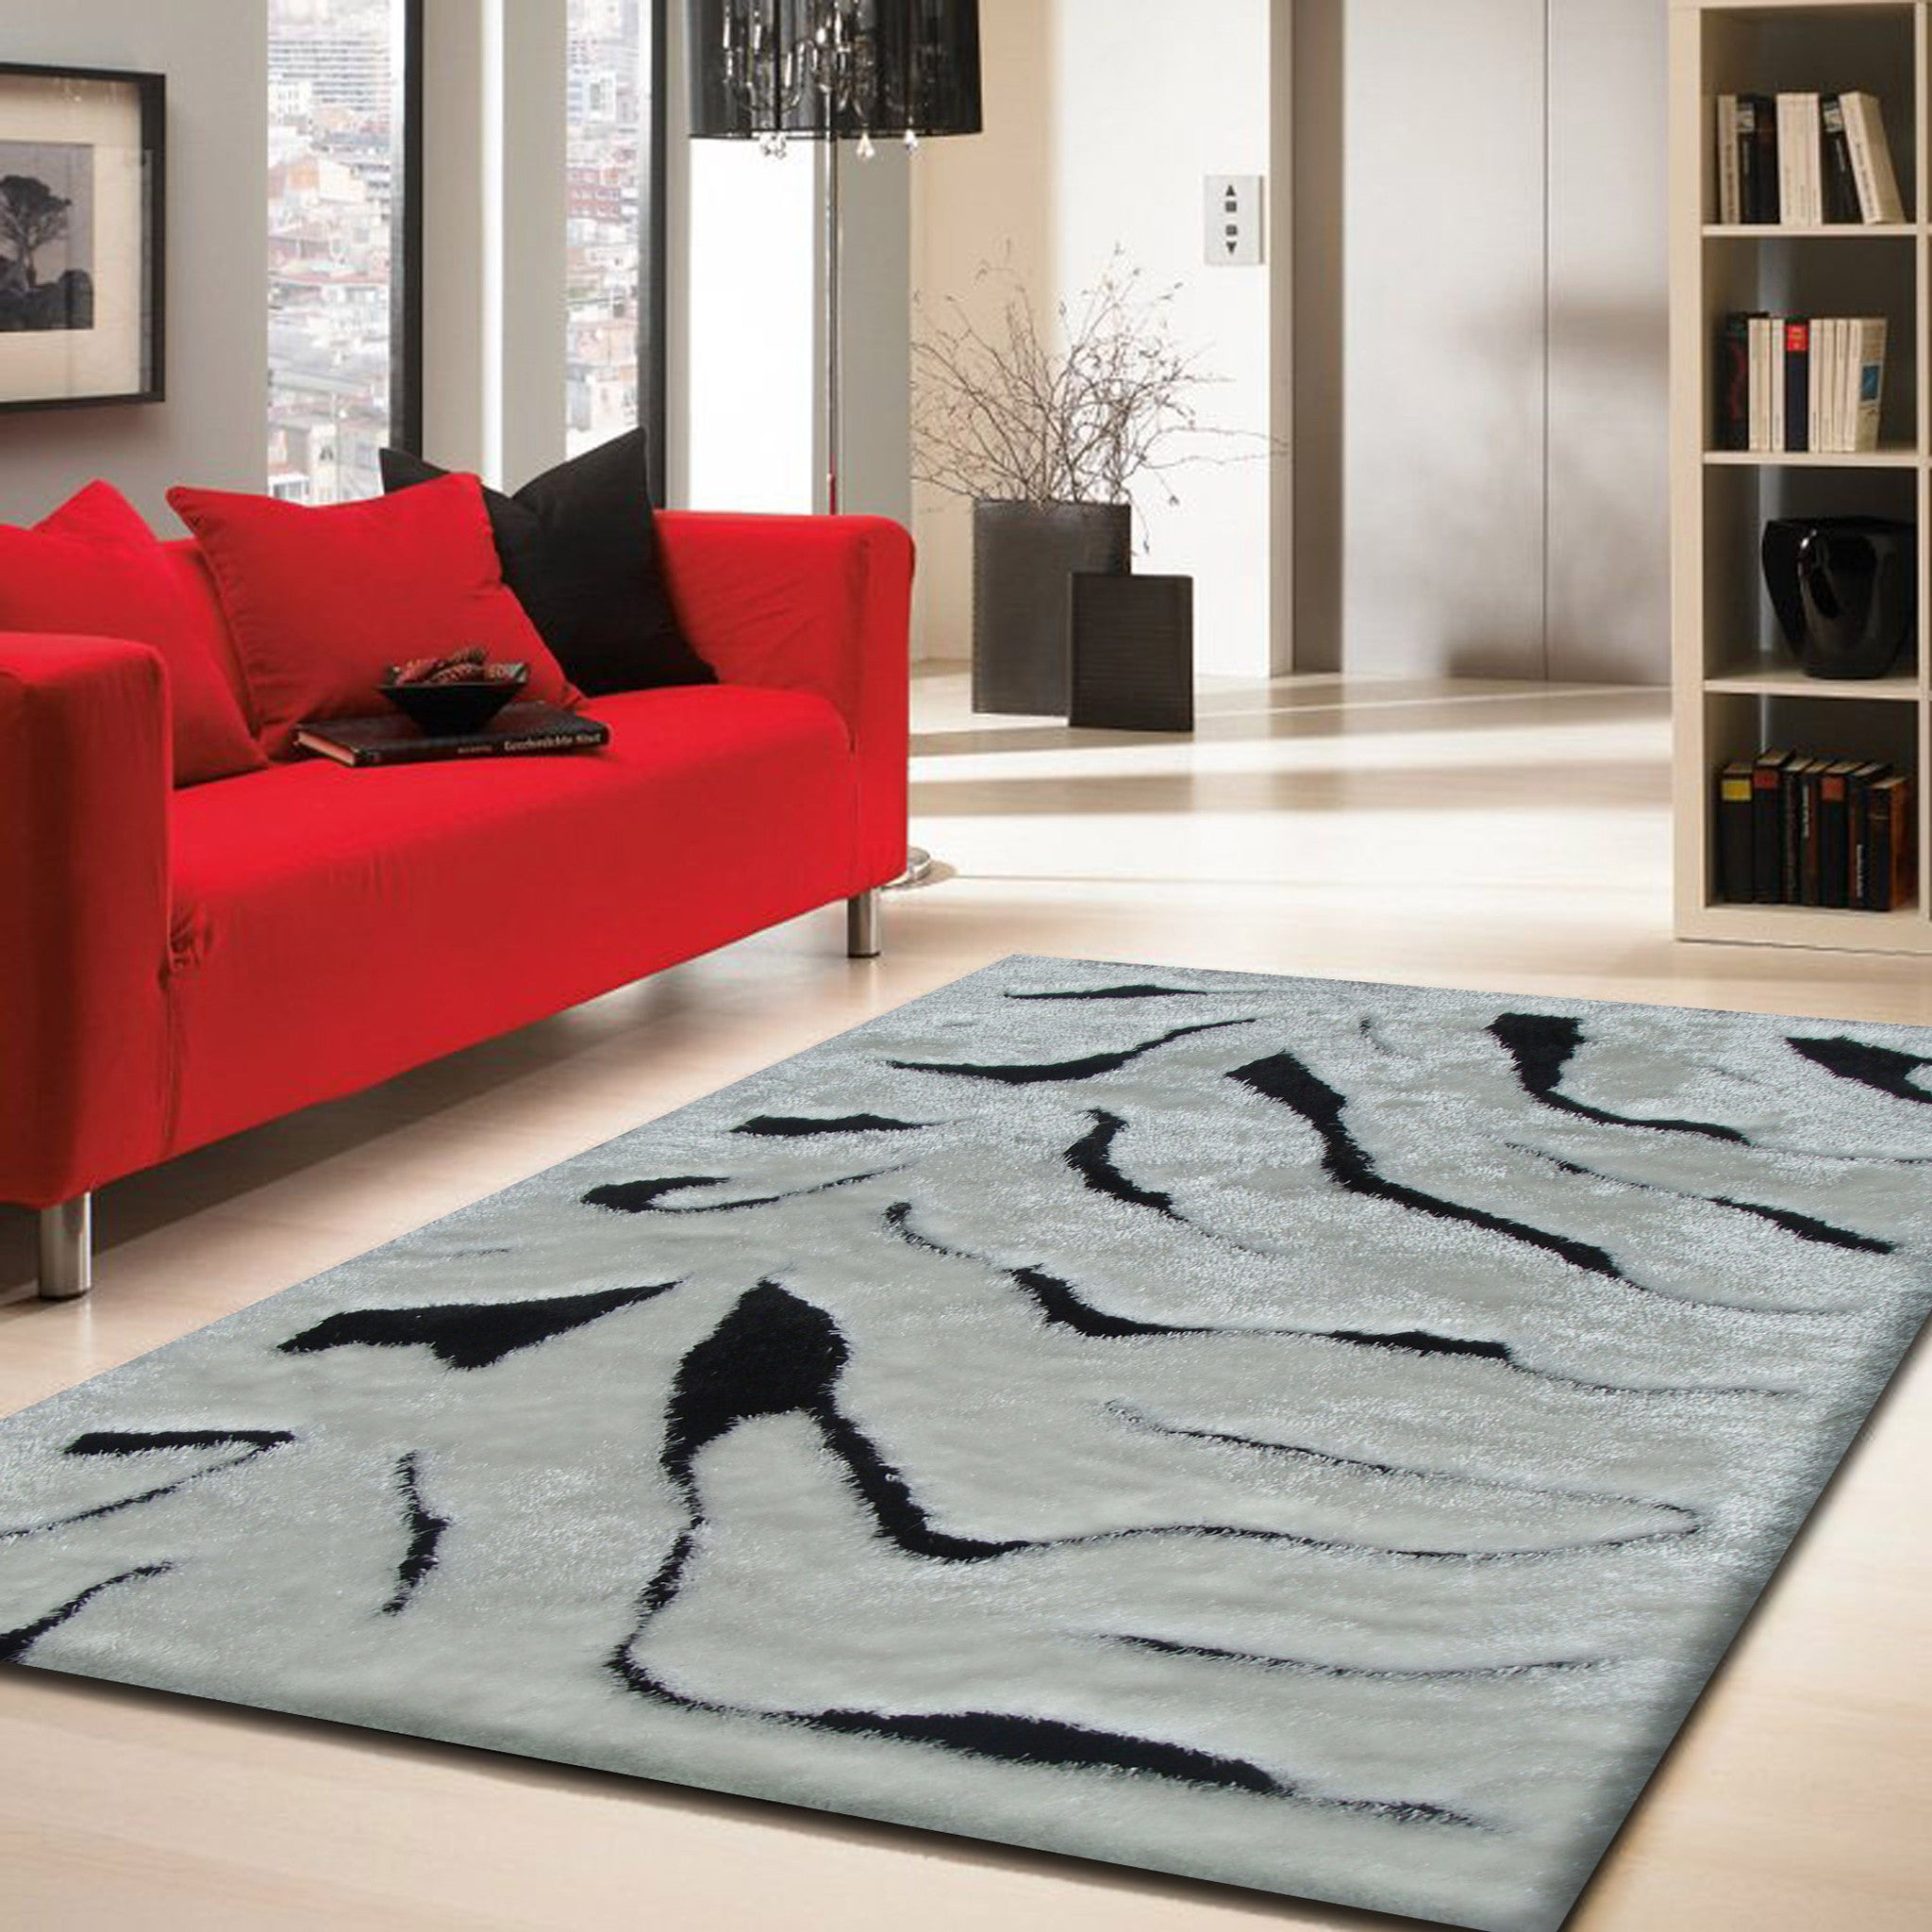 size soft rug brown ideas indoor room full with oz addiction area canada turquoise x chenille living of rugs ft floor shag design bedroom interesting decoration style adorable plush scenic sheepskin